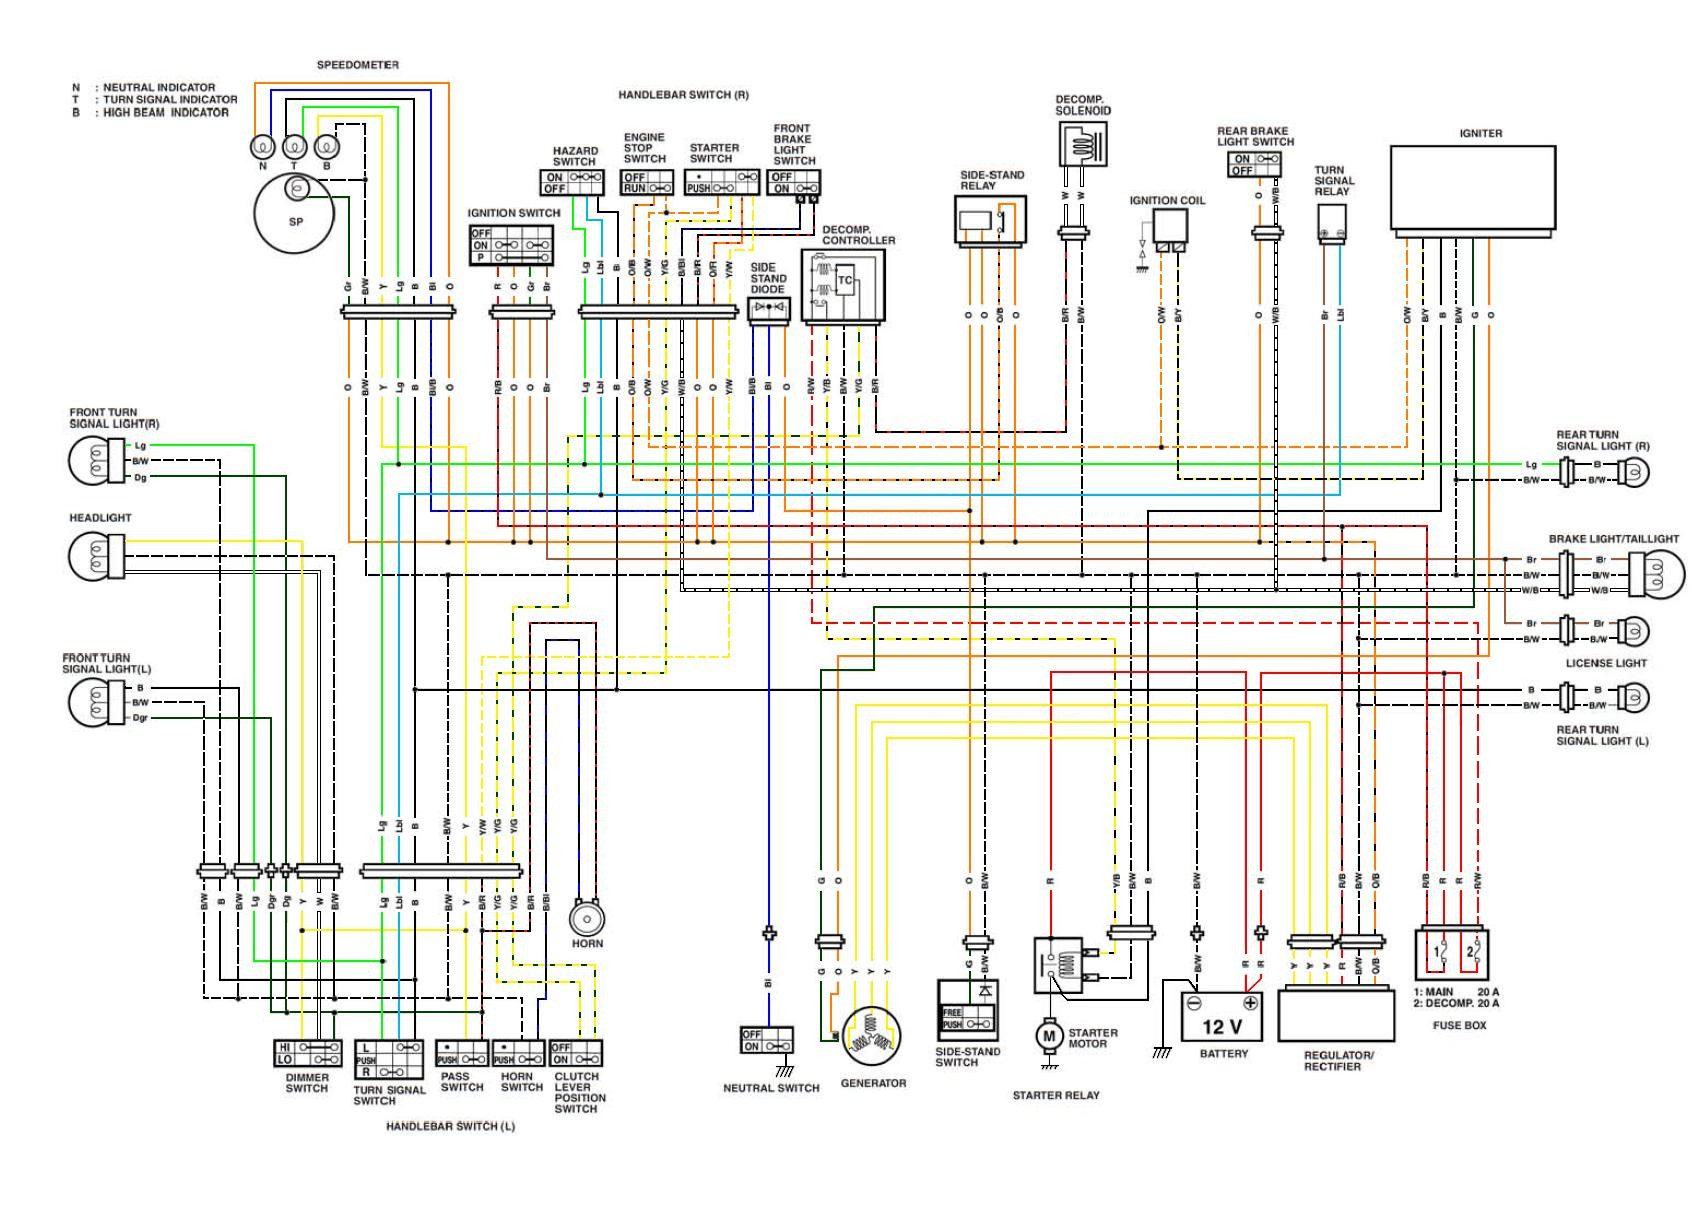 harley davidson neutral switch wiring diagram - wiring diagrams wet-script  - wet-script.mumblestudio.it  mumblestudio.it